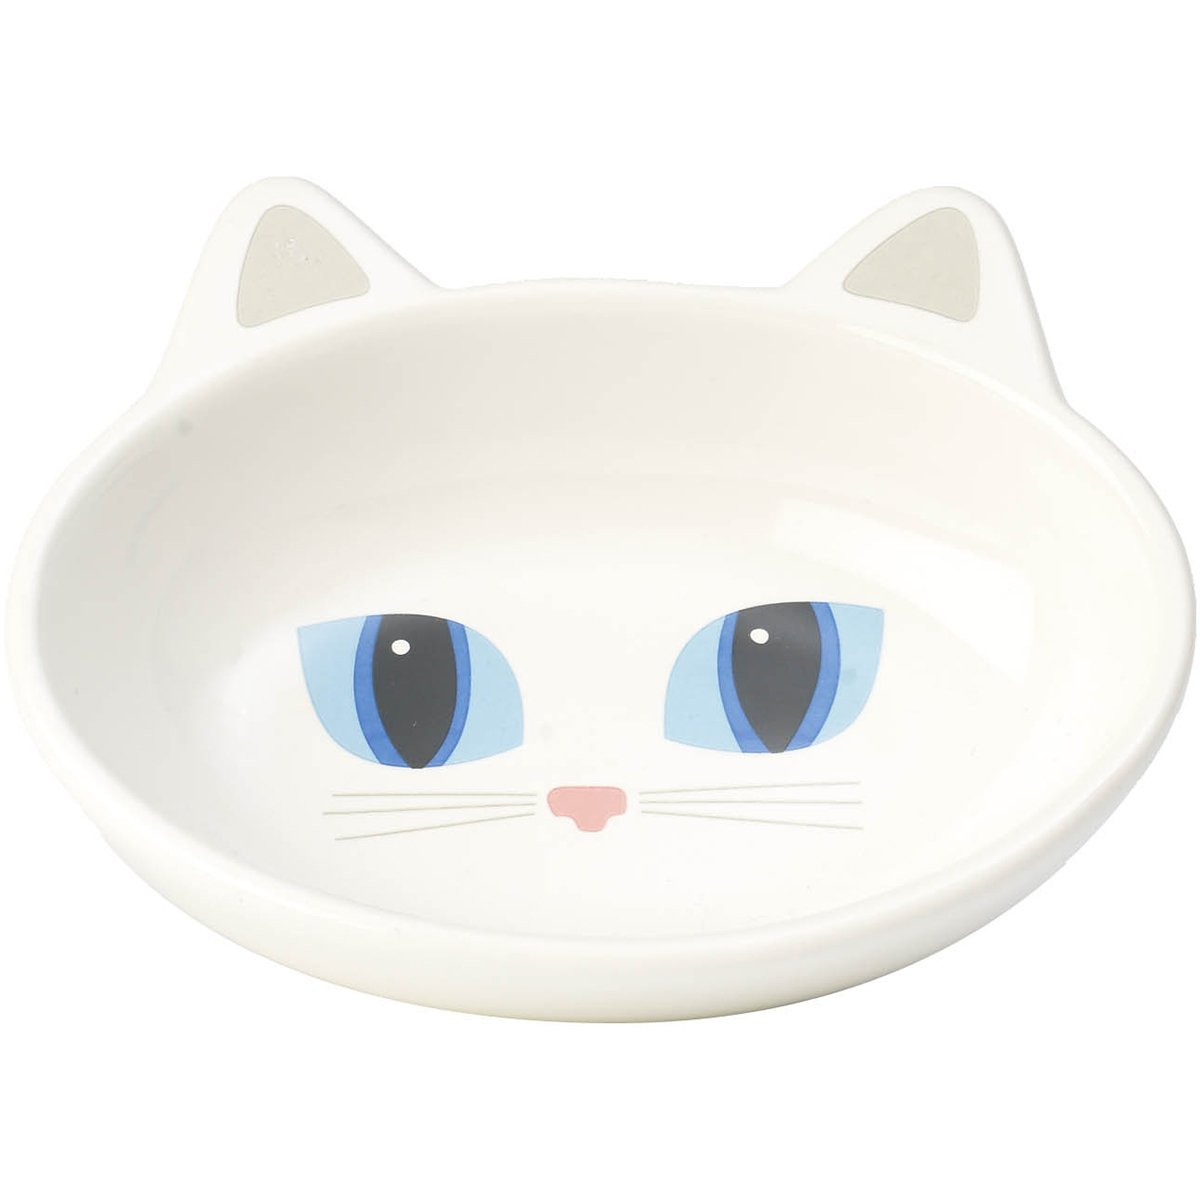 PetRageous Oval Frisky Kitty Pet Bowl, 5.5-Inch, White